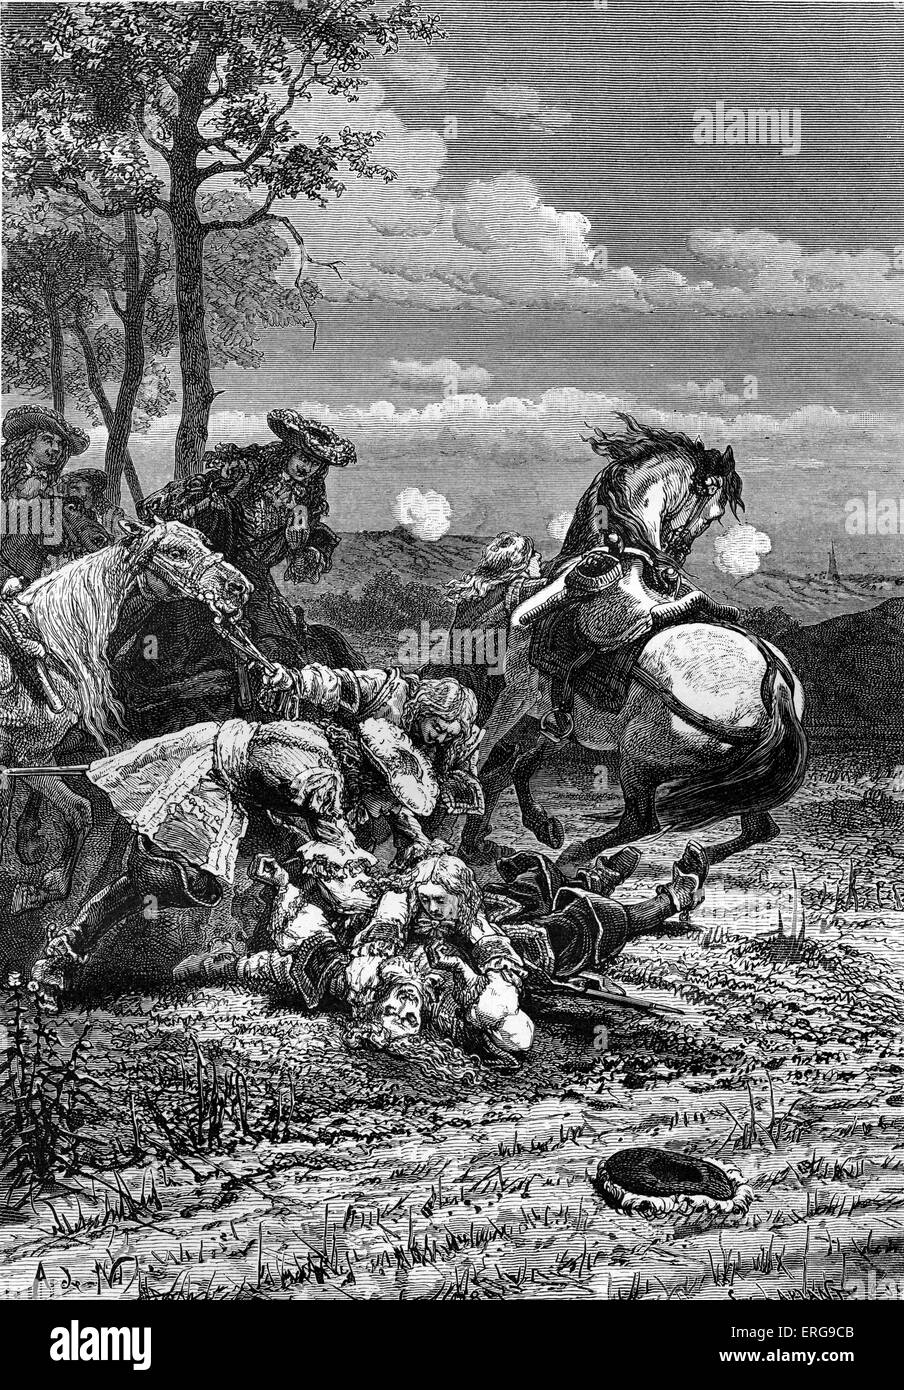 Vicomte de Turenne 's death, 27 July 1675. During the Battle of Salzbach (Alsace) between France and the Holy - Stock Image